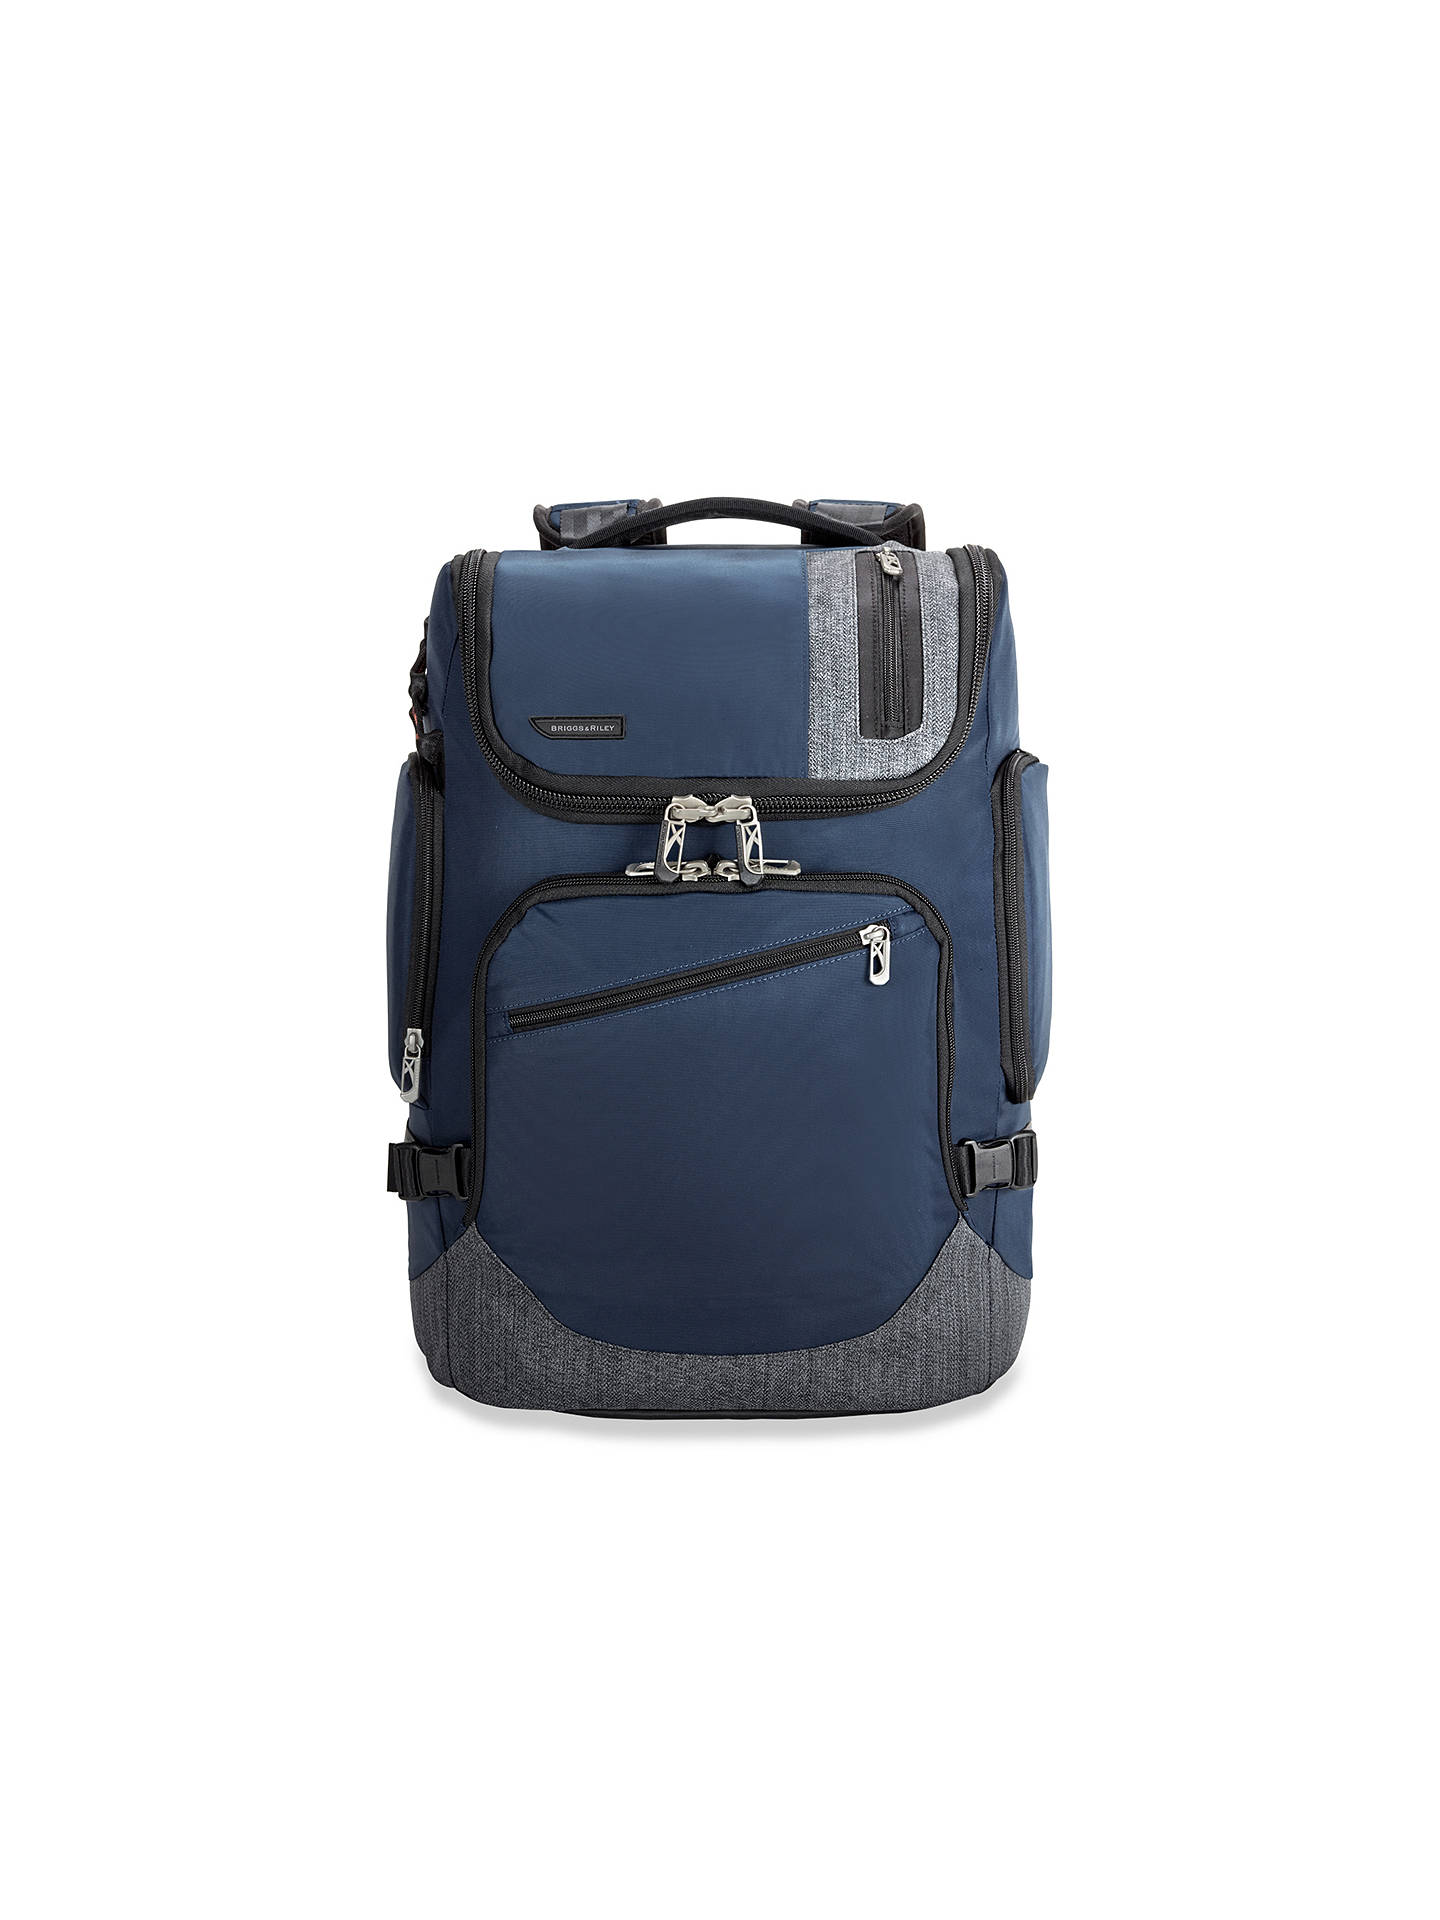 BuyBriggs & Riley BRX Excursion Backpack, Blue Online at johnlewis.com